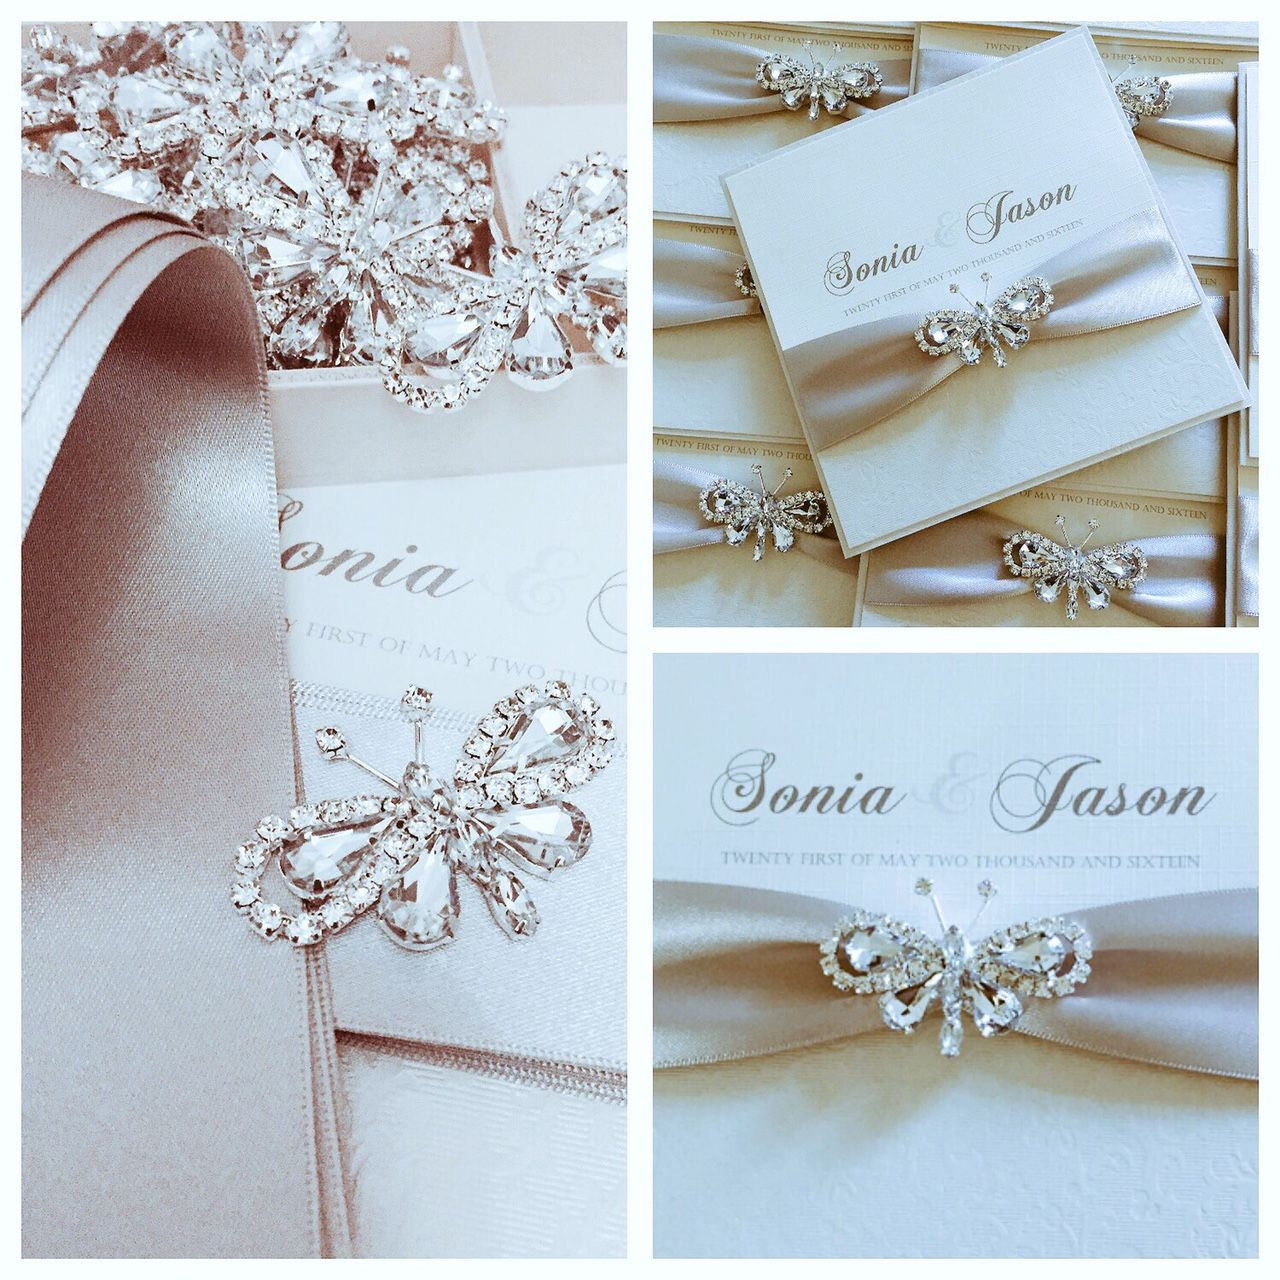 Sparkly wedding invitation designs. Glitzy invitations embellished with diamante crystals and brooches. Invite your guest with sparkles.